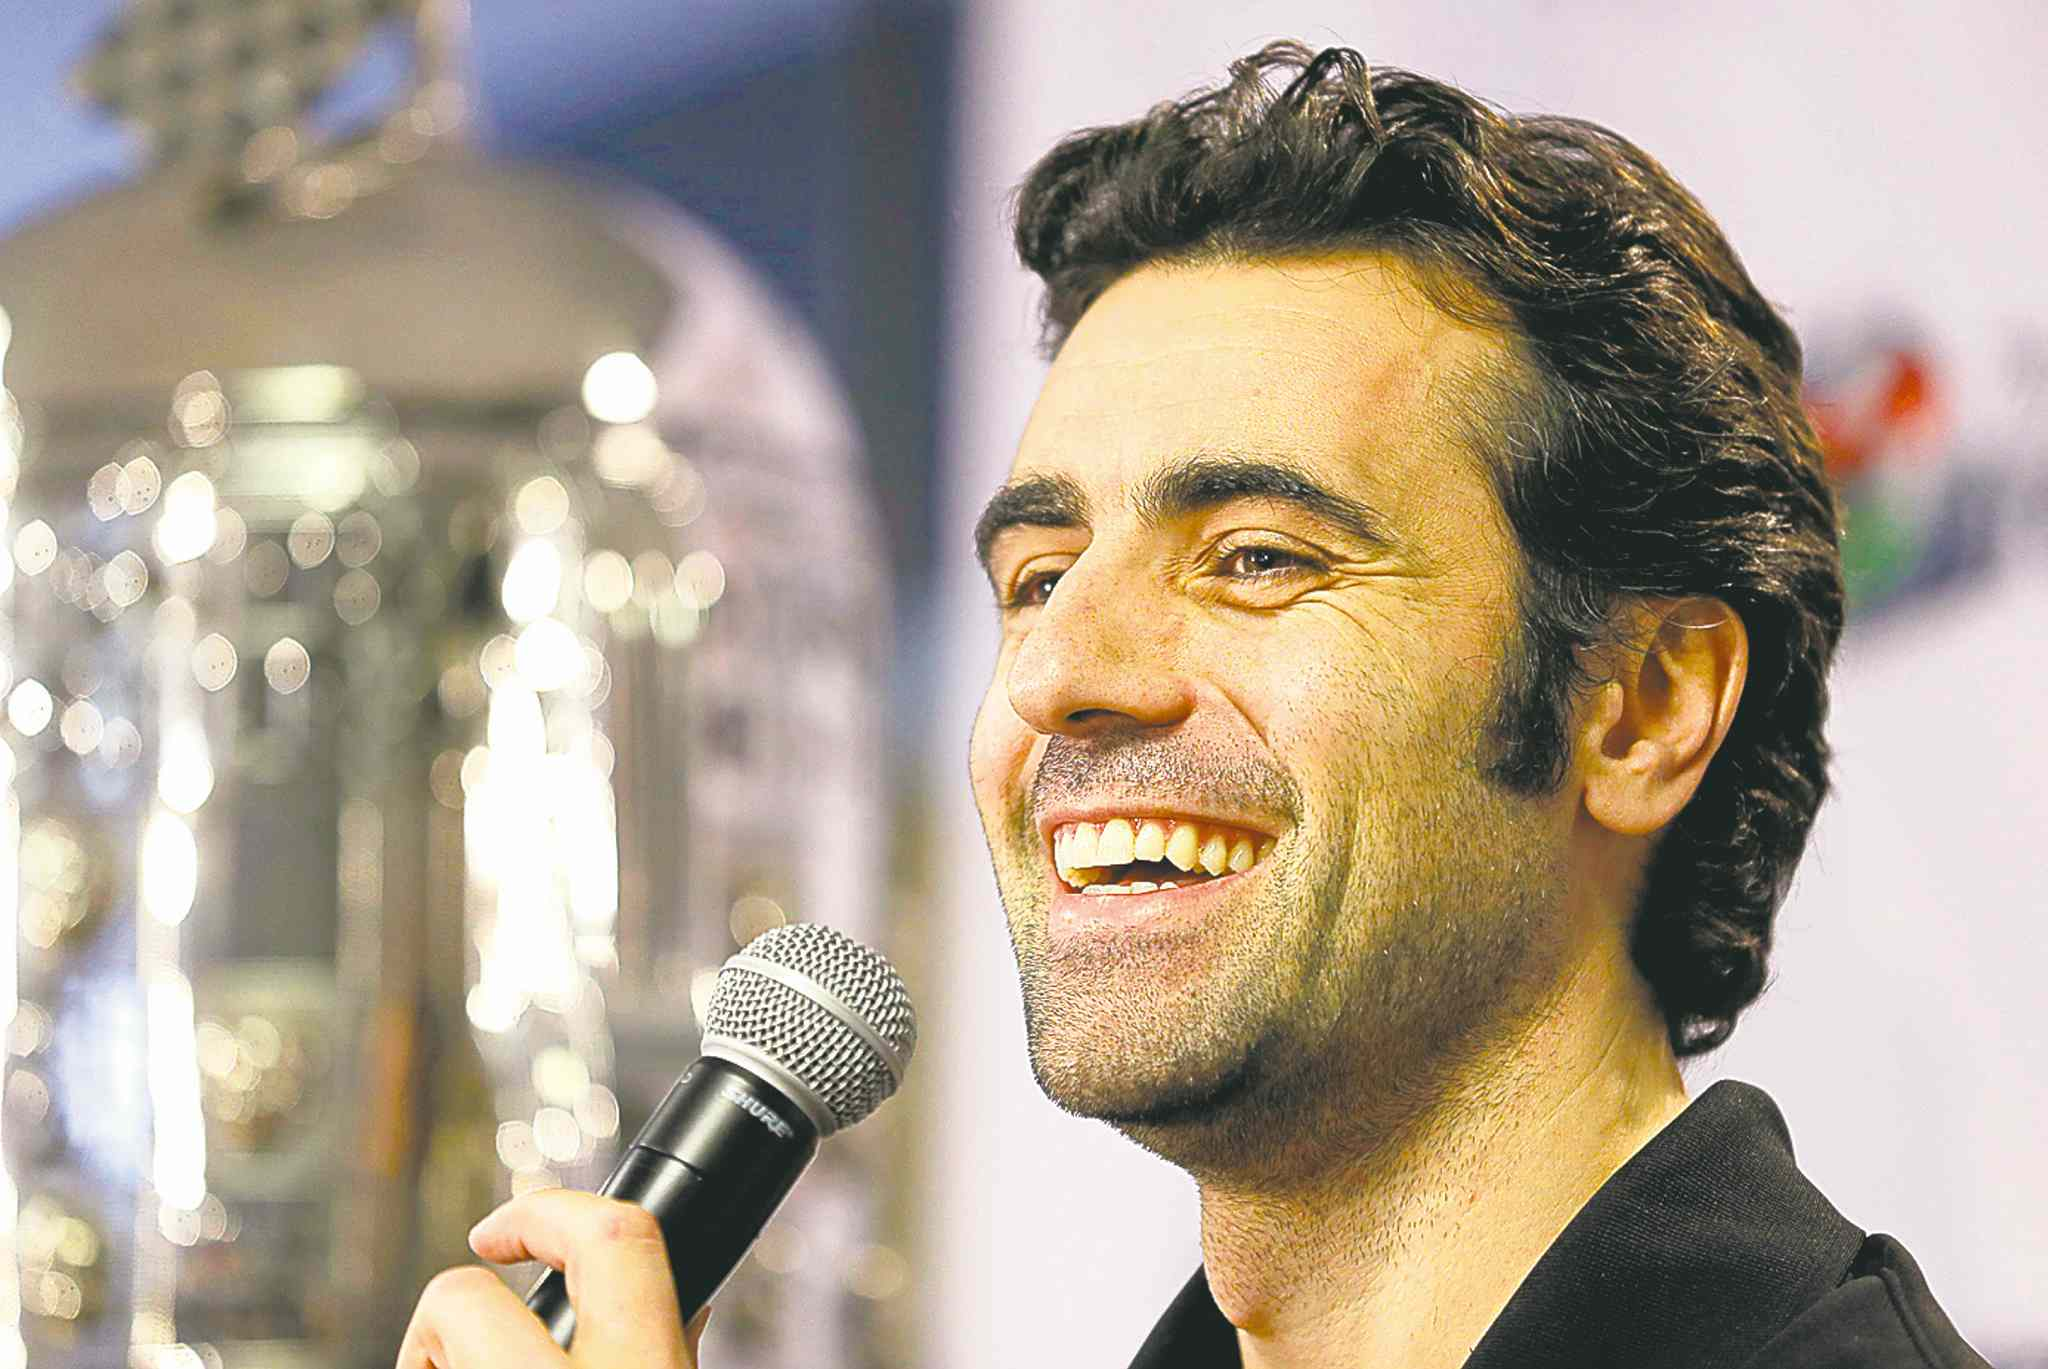 Michael Conroy / the associated pressDario Franchitti answers questions in his first public appearance since a crash ended his IndyCar career. during a press conference in Indianapolis, Thursday, Dec. 19, 2013. The four-time series champ and three-time Indianapolis 500 winner will not race again because of the risks involved with another head injury. He suffered a concussion, spinal fractures and a broken right ankle in the Oct. 6 crash in Houston. (AP Photo/)